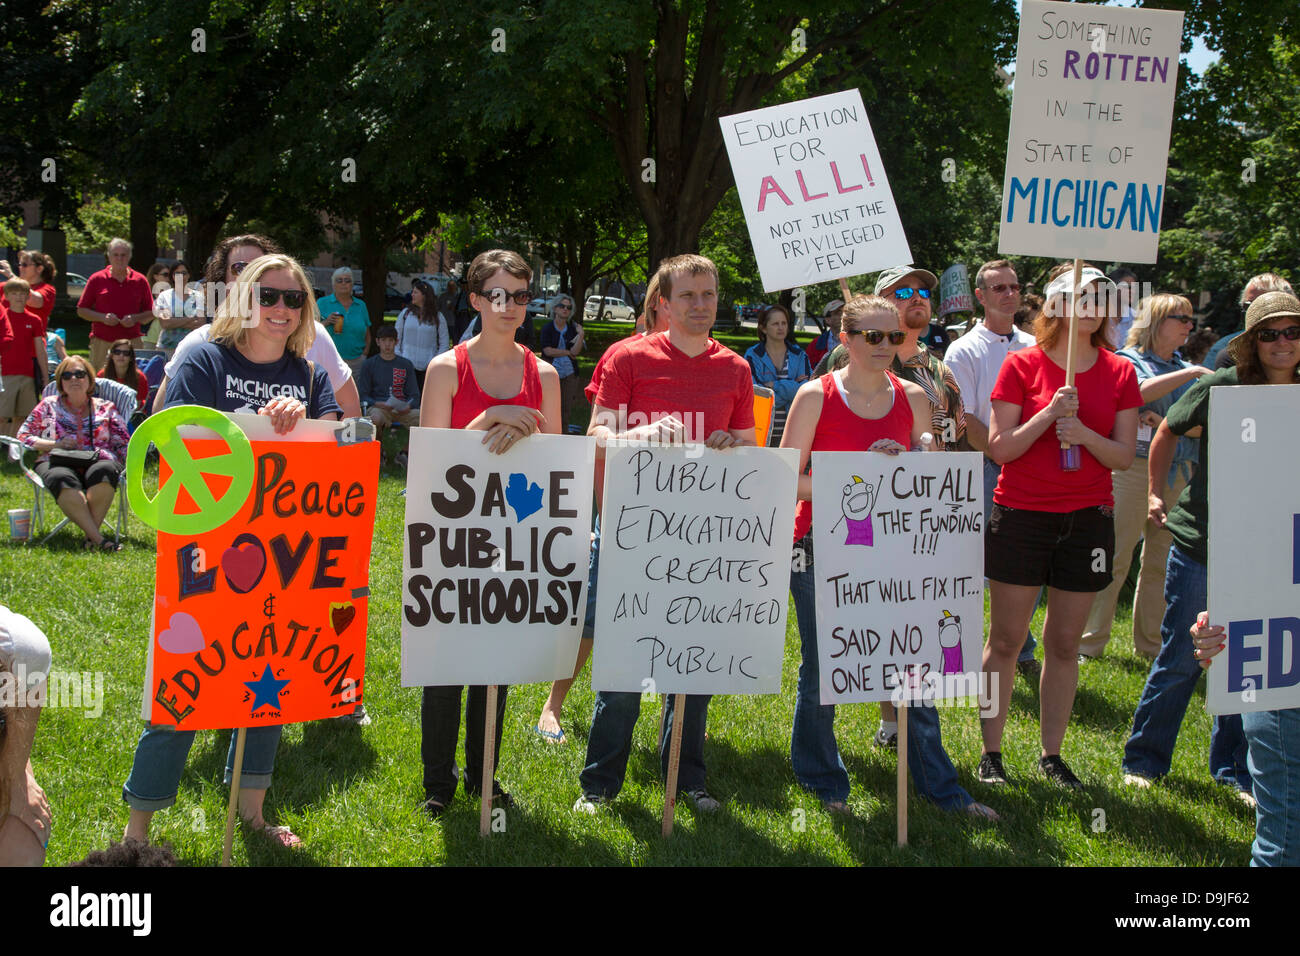 Rally to Save Public Schools - Stock Image